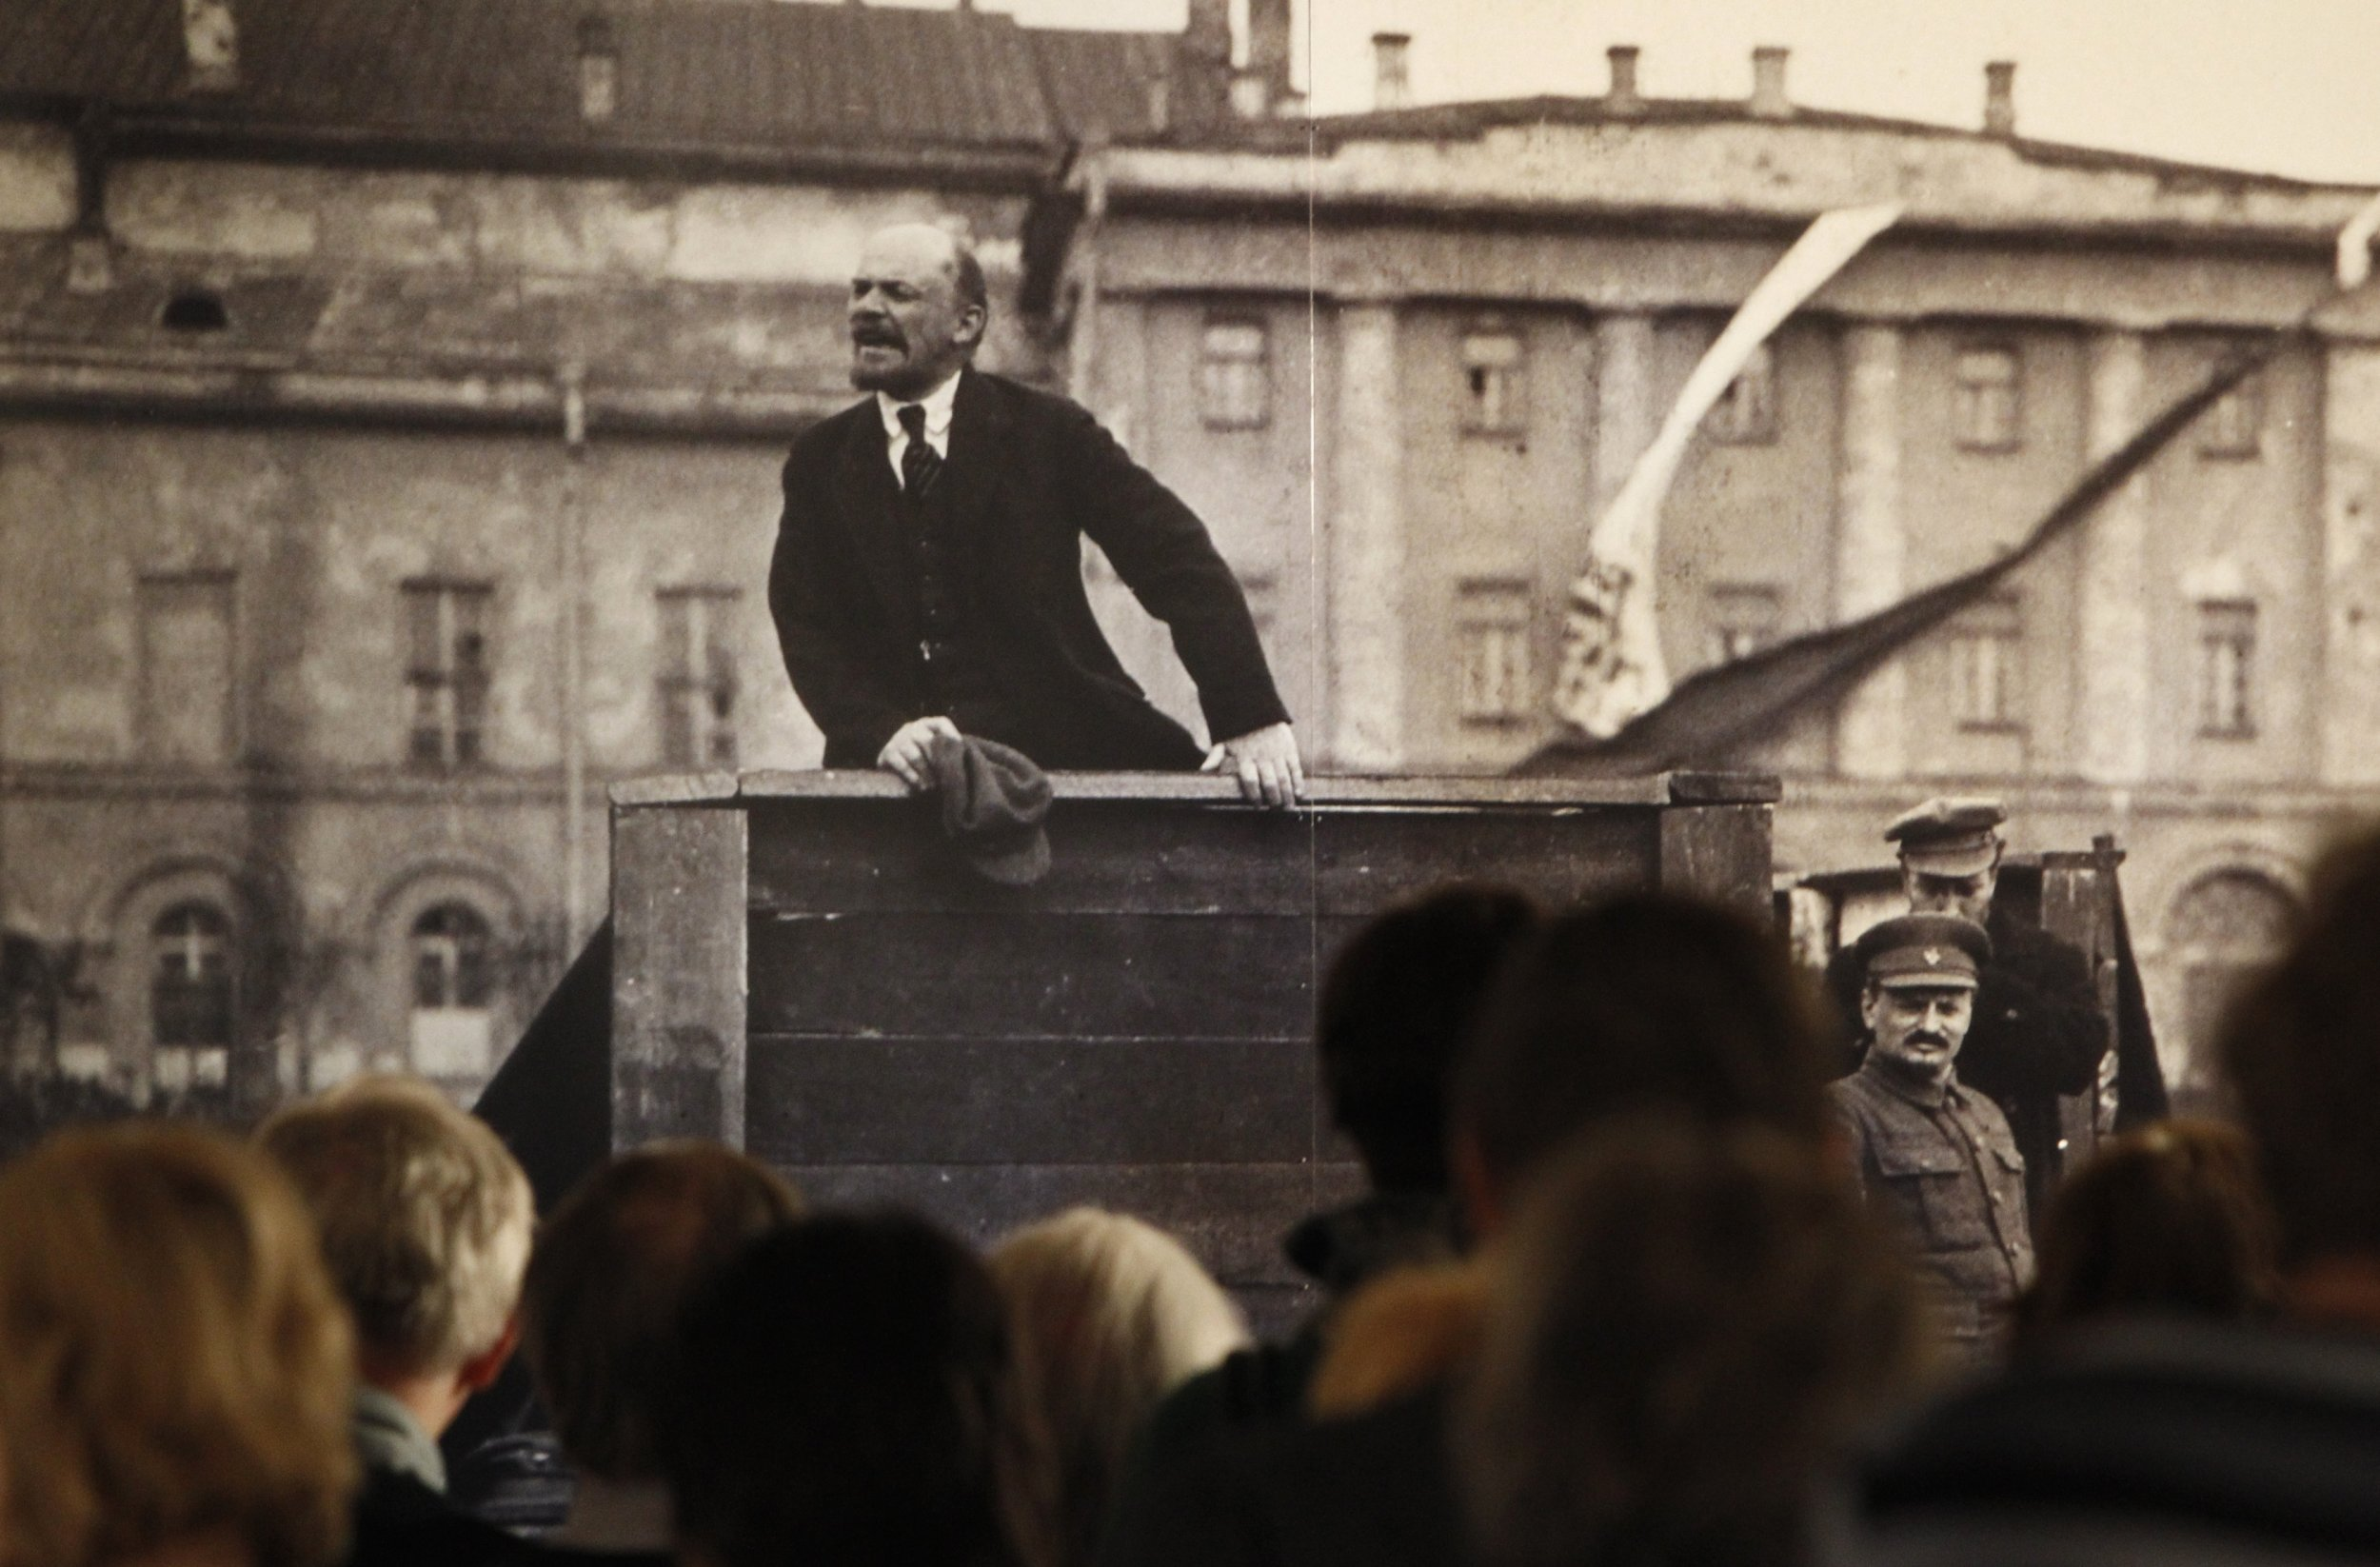 In Russia, erased the memory of the Stalinist repression 70